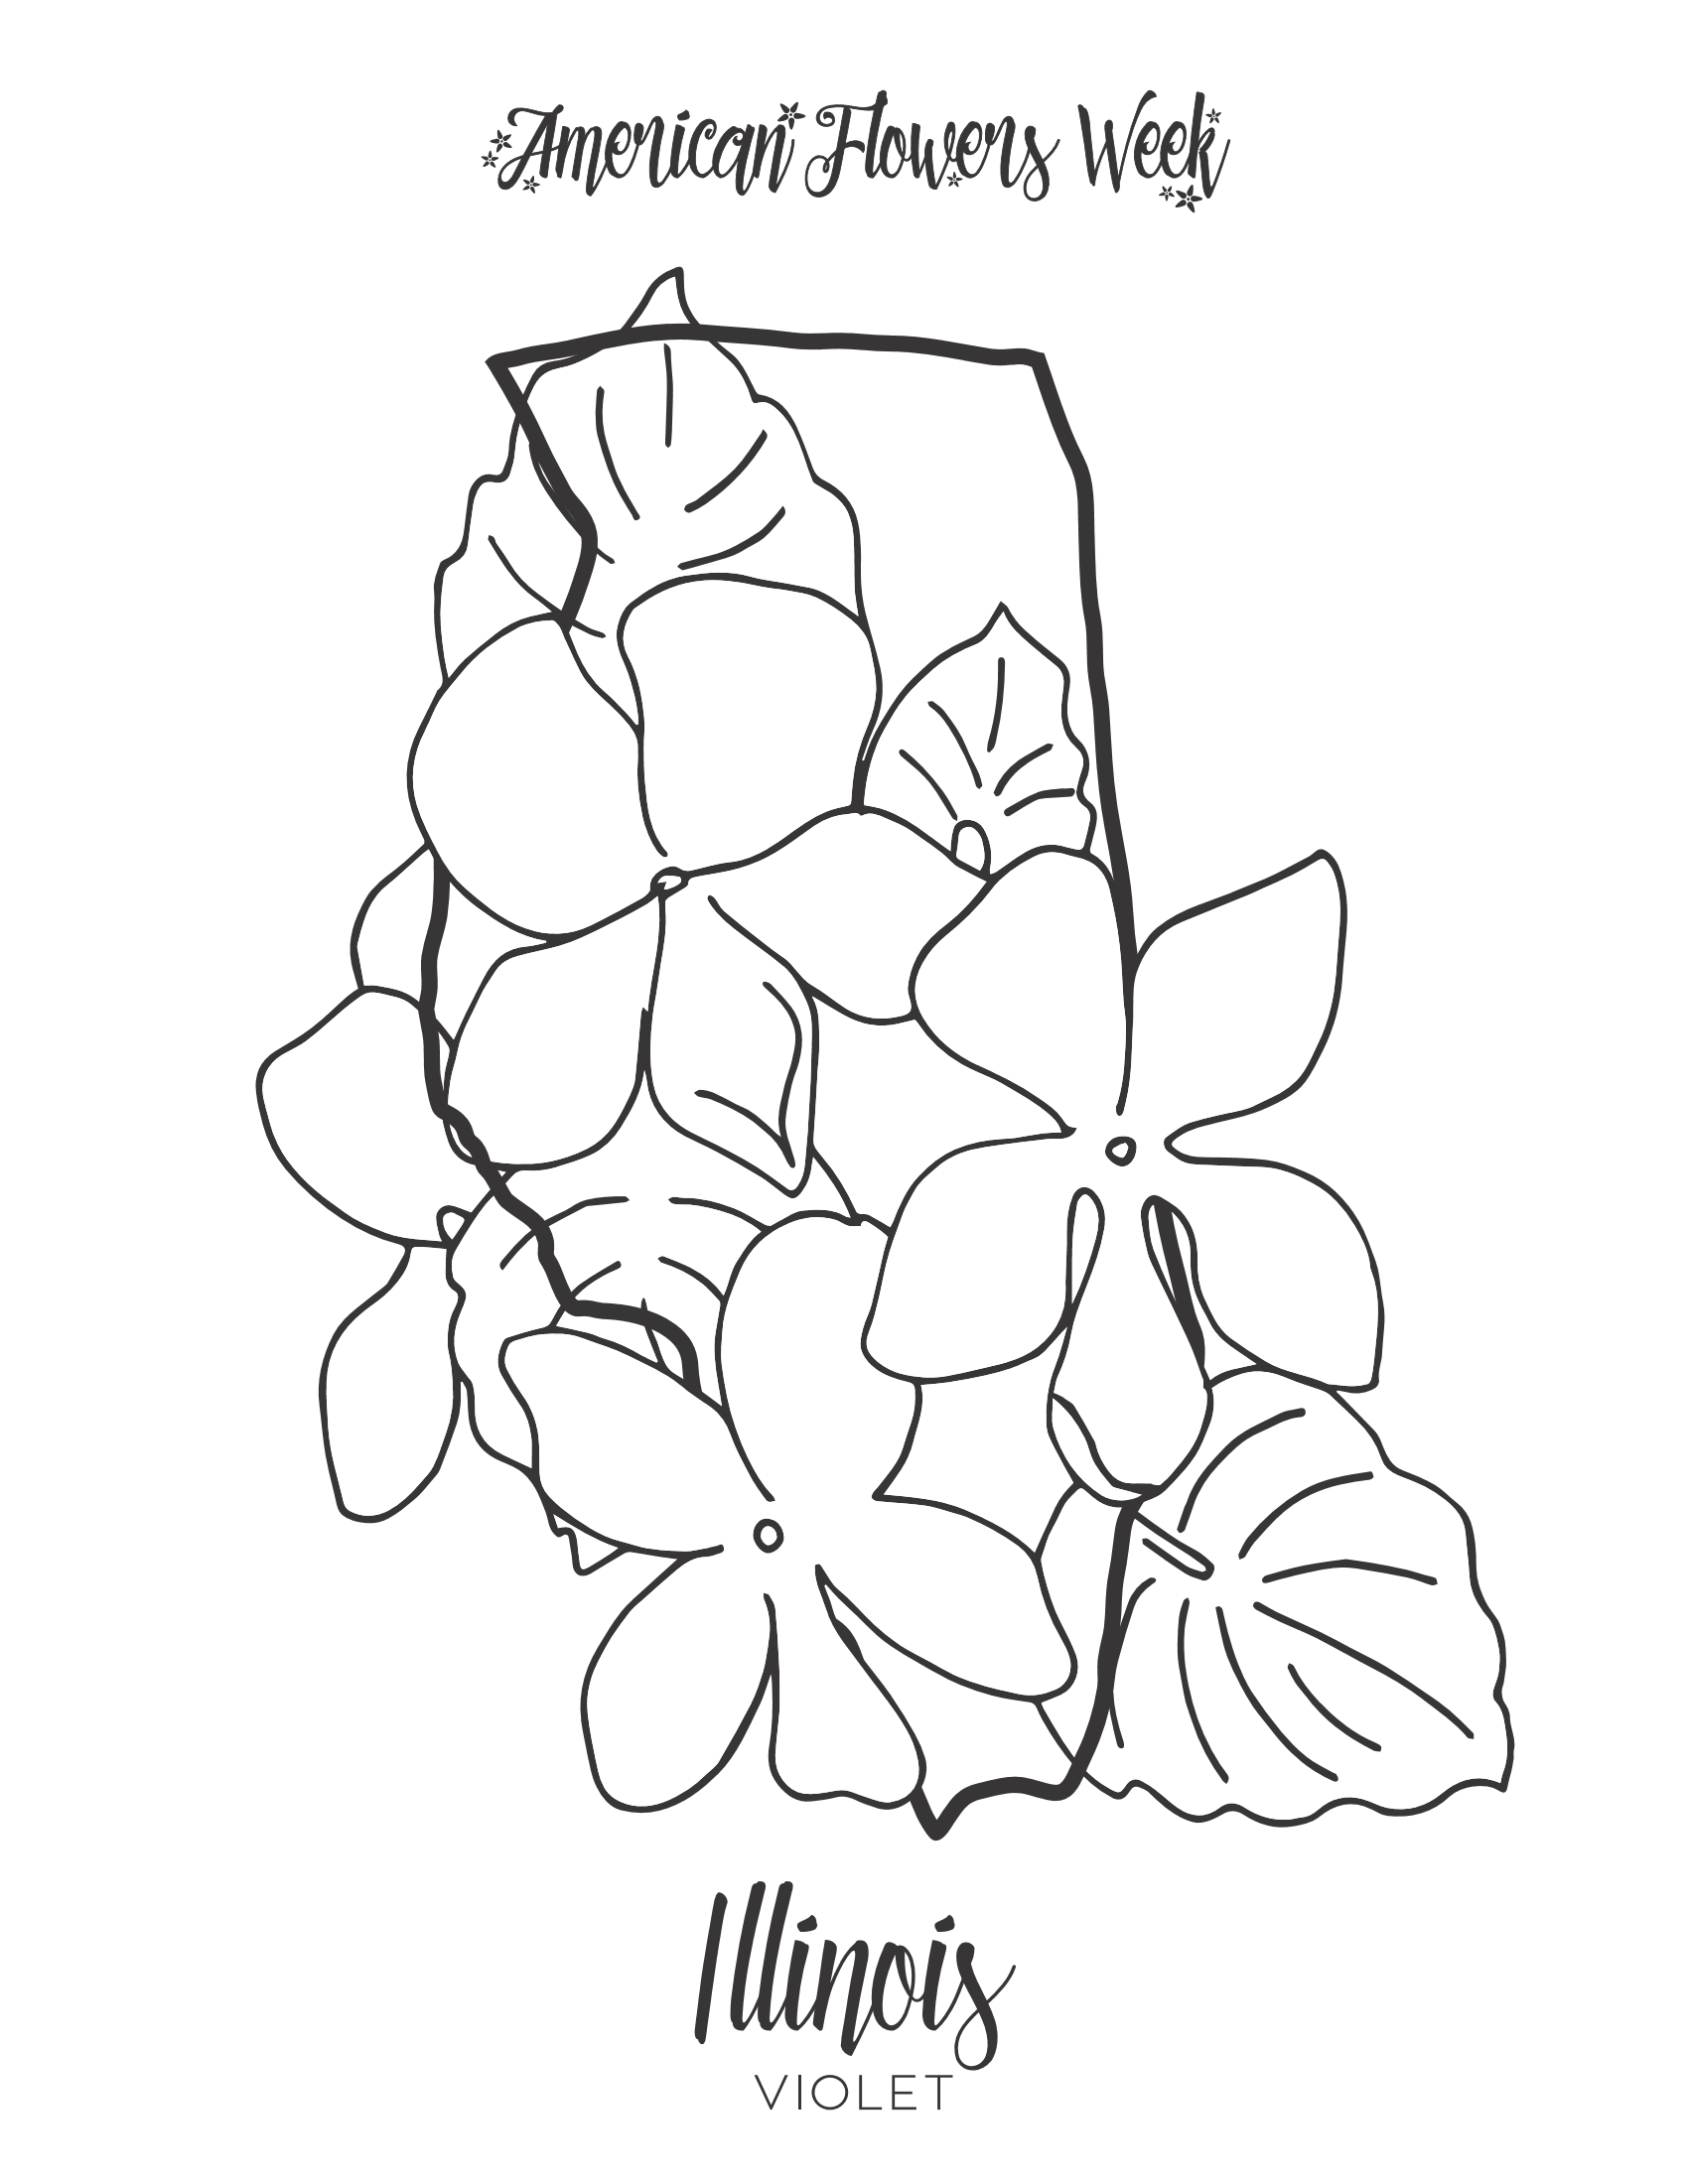 iowa state flower 50 state flowers free coloring pages american flowers week iowa flower state